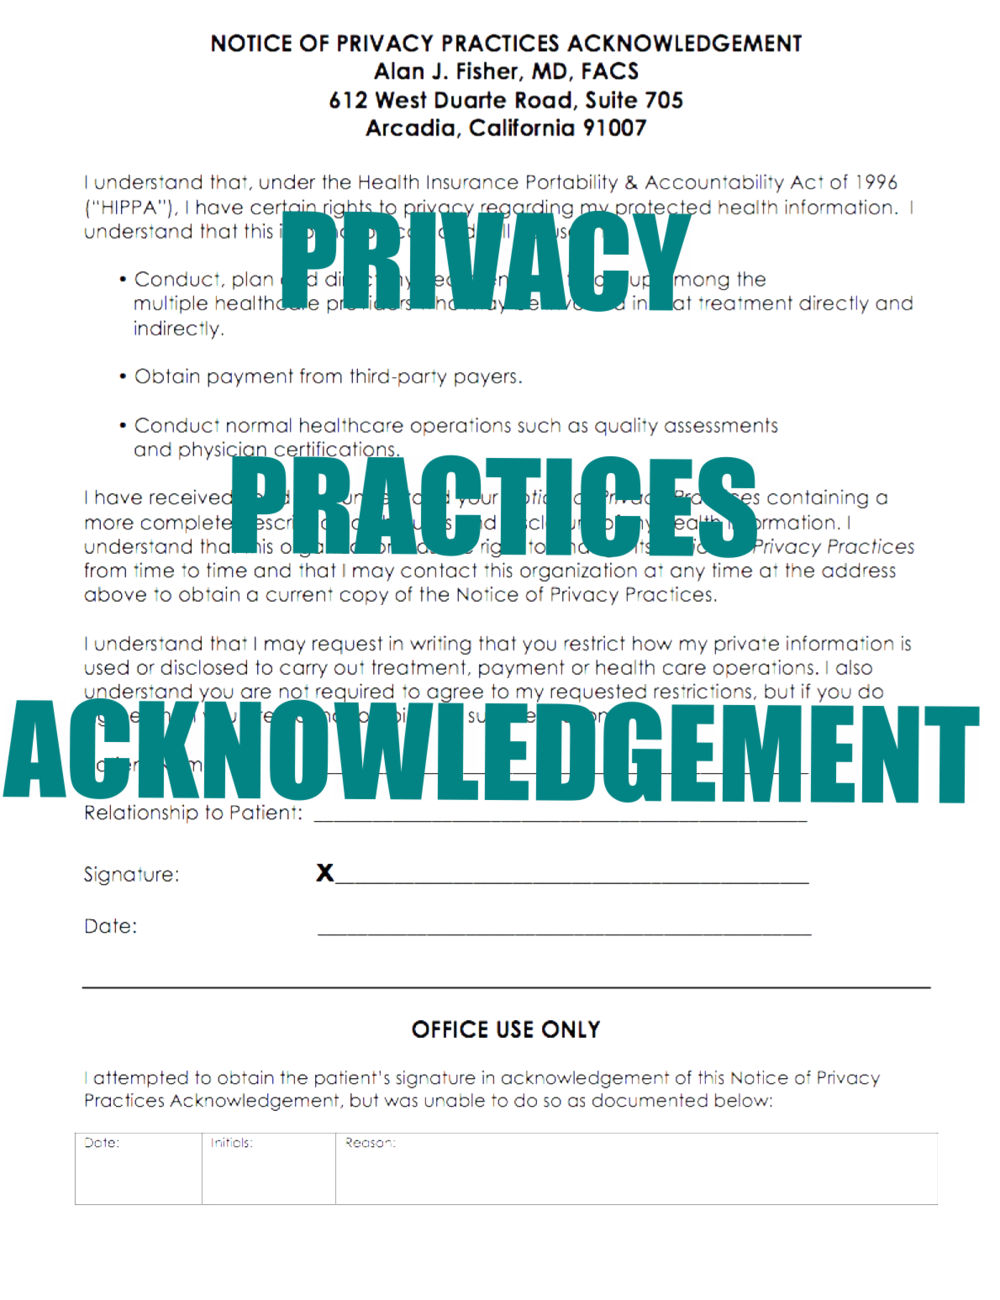 Privacy Practices Acknowledgement - click to open